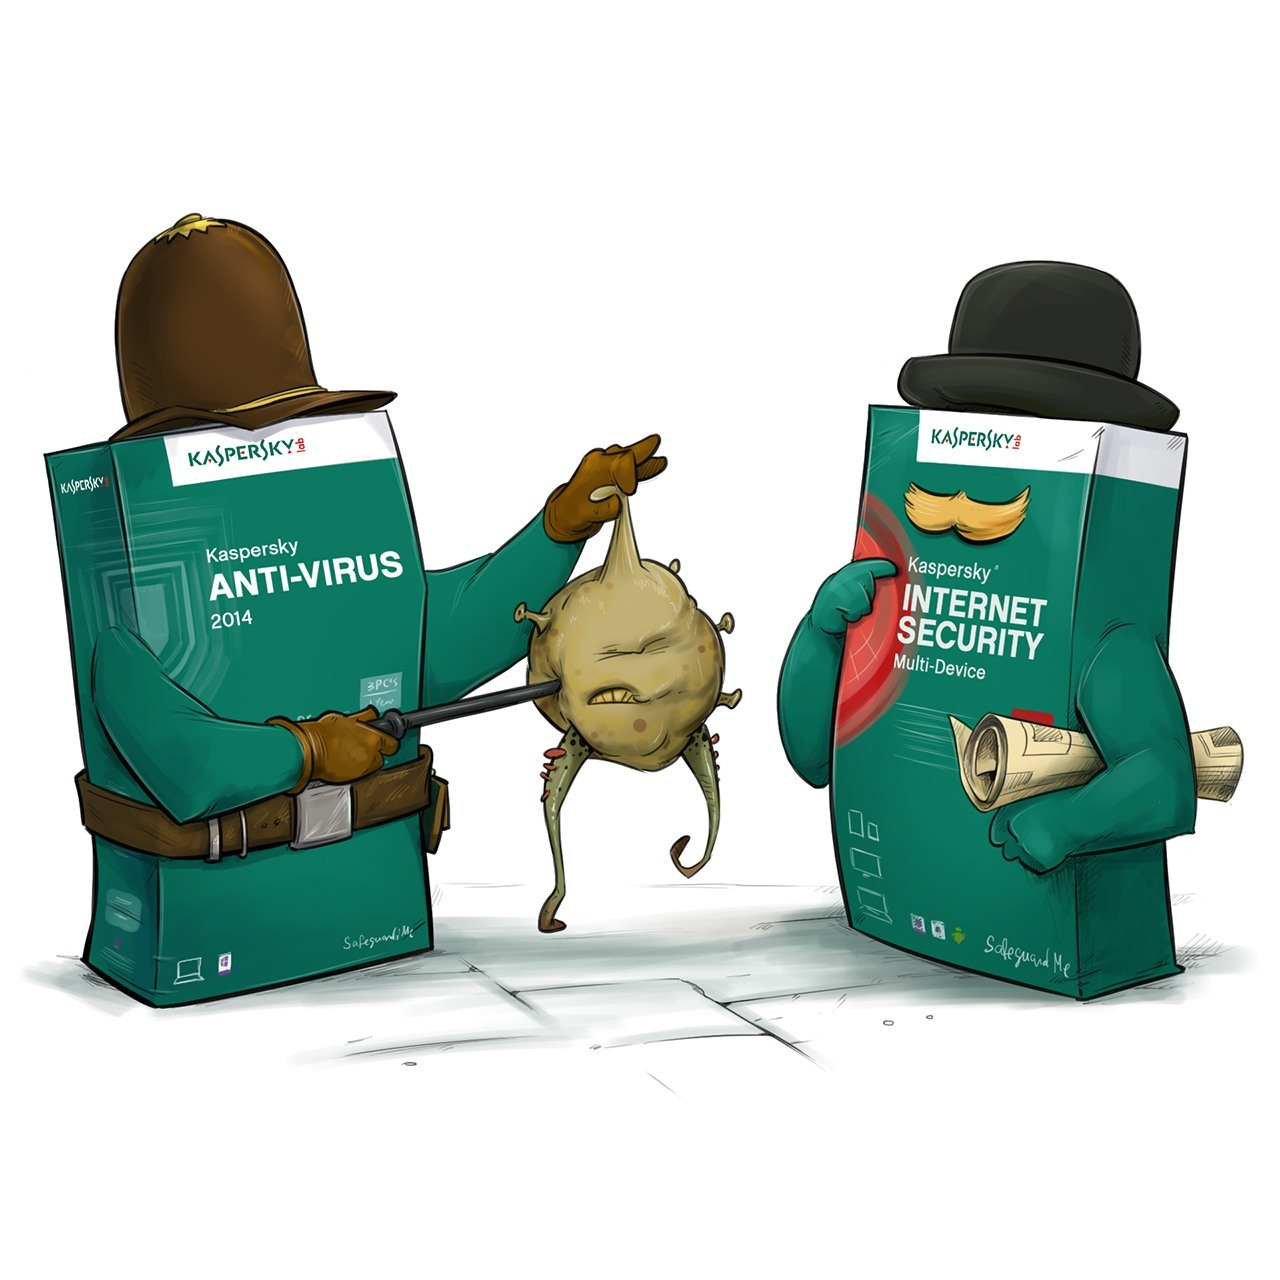 Kaspersky Anti-Virus и Kaspersky Internet Security: в чем разница?